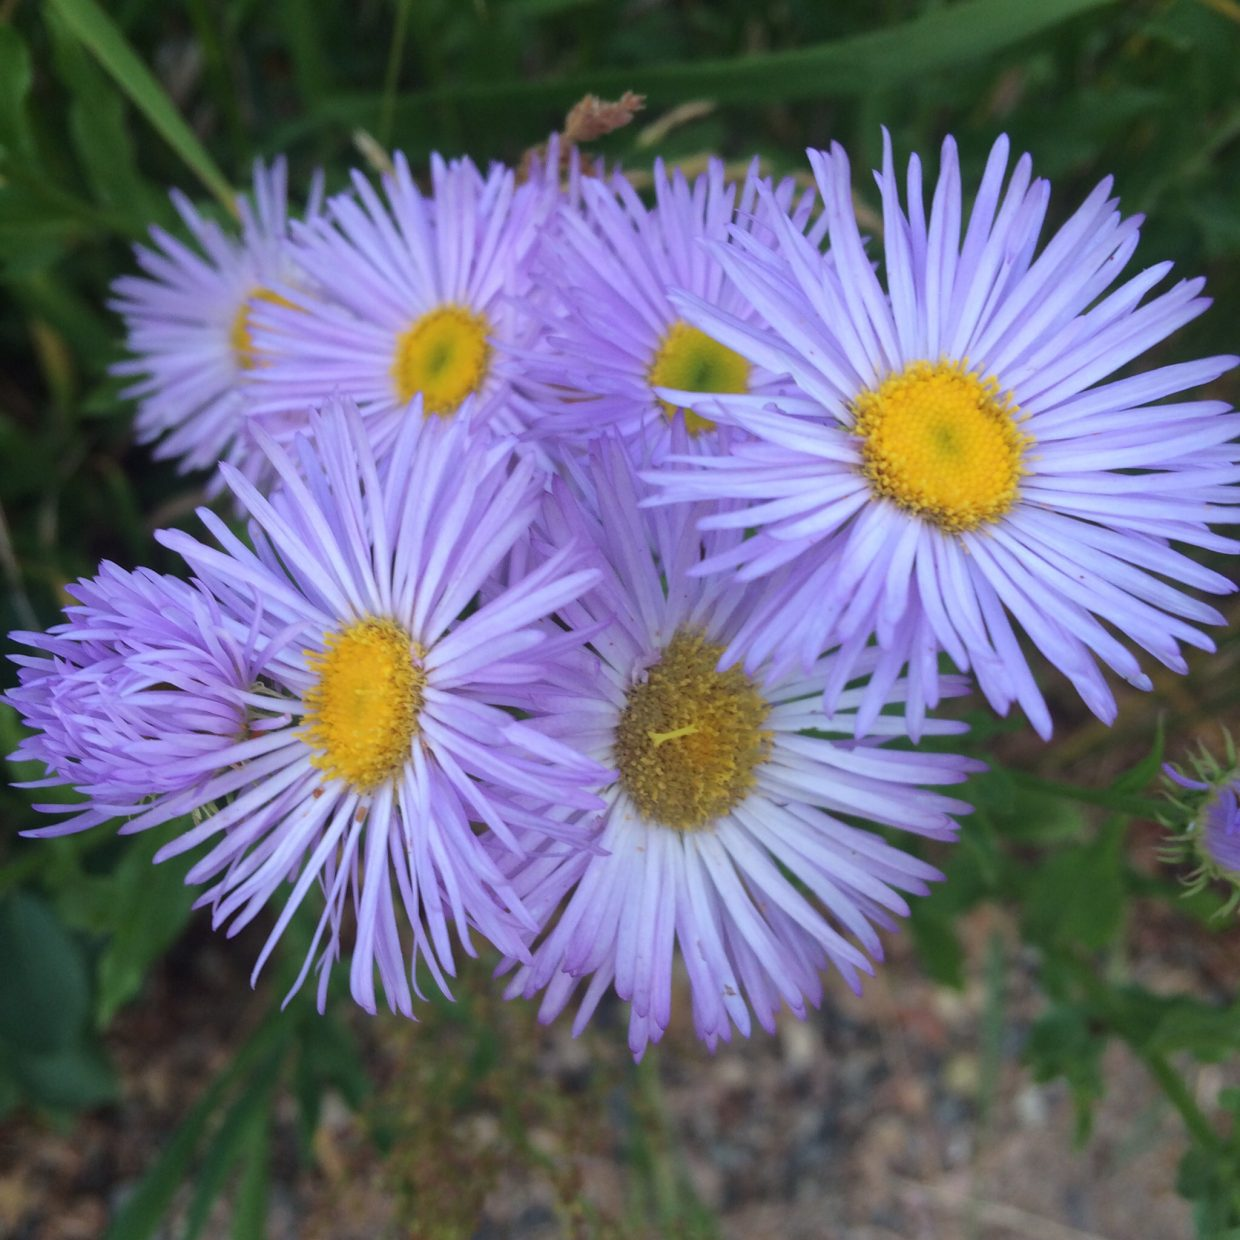 Wildflowers of Steamboat. Submitted by Linda Briseno.